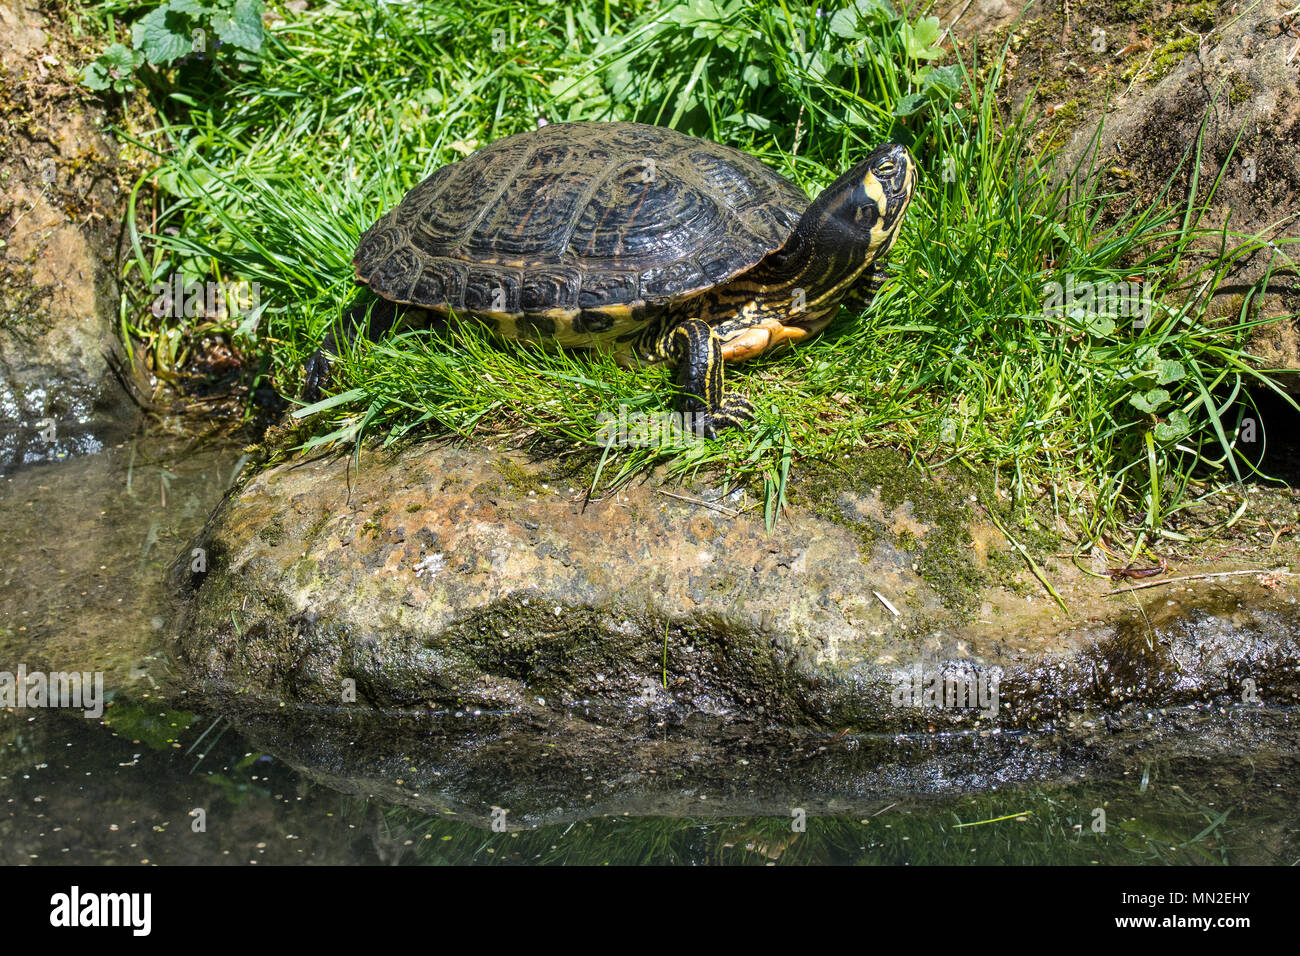 Yellow-bellied slider (Trachemys scripta scripta), land and water turtle native to the southeastern United States - Stock Image